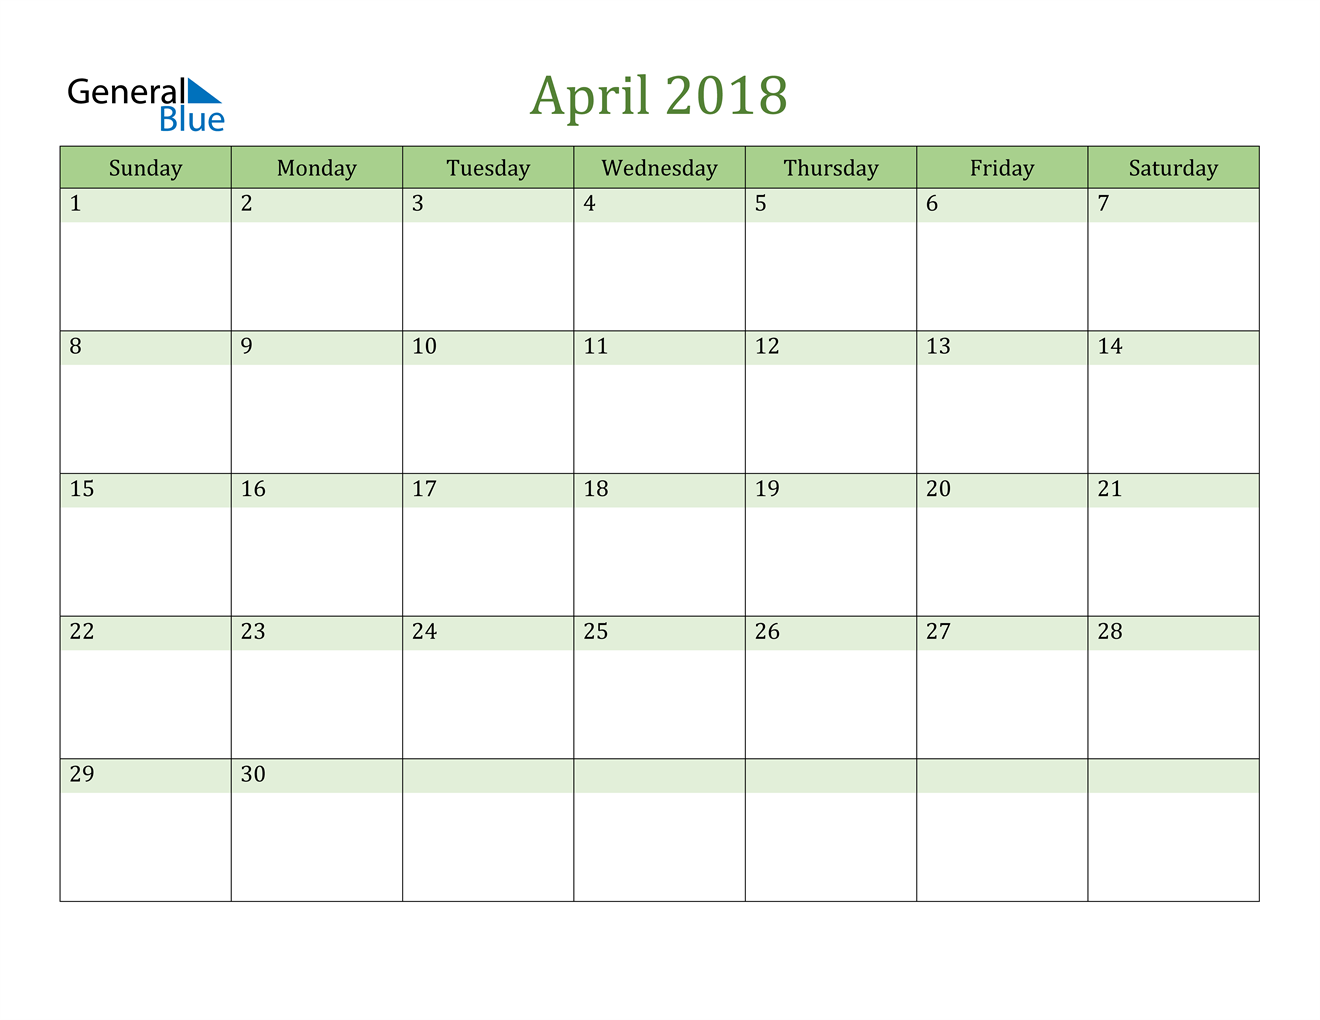 Image of April 2018 Cool and Relaxing Green Calendar Calendar